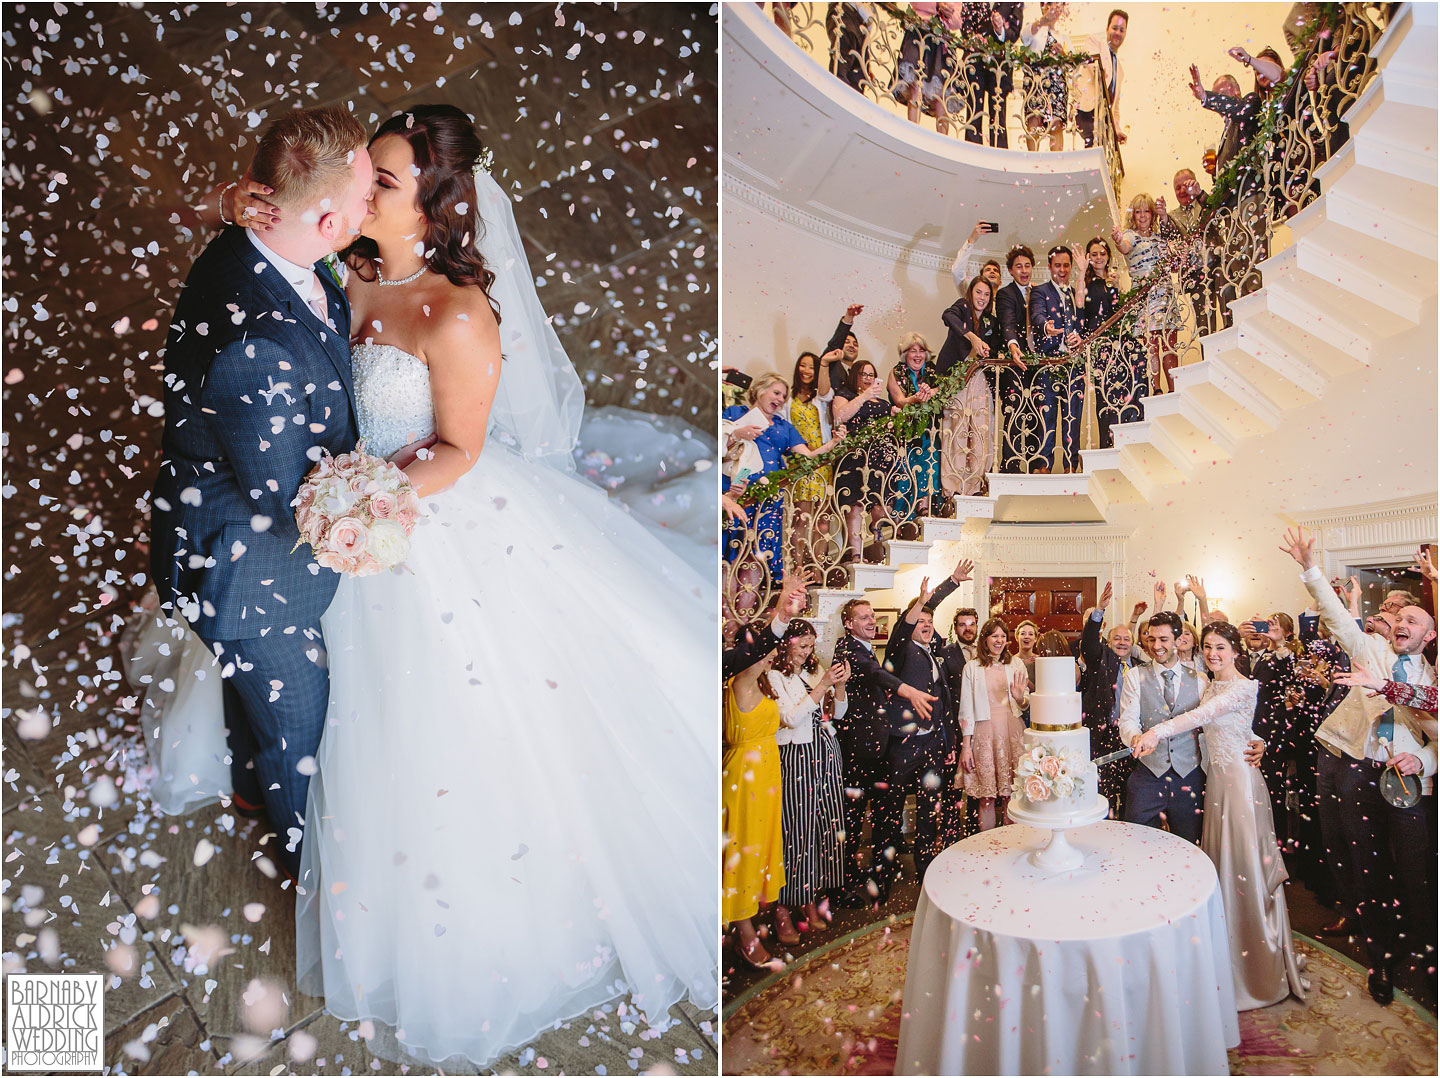 Priory Cottages Confetti photo, Amazing Yorkshire Wedding Photos, Best Yorkshire Wedding Photos 2018